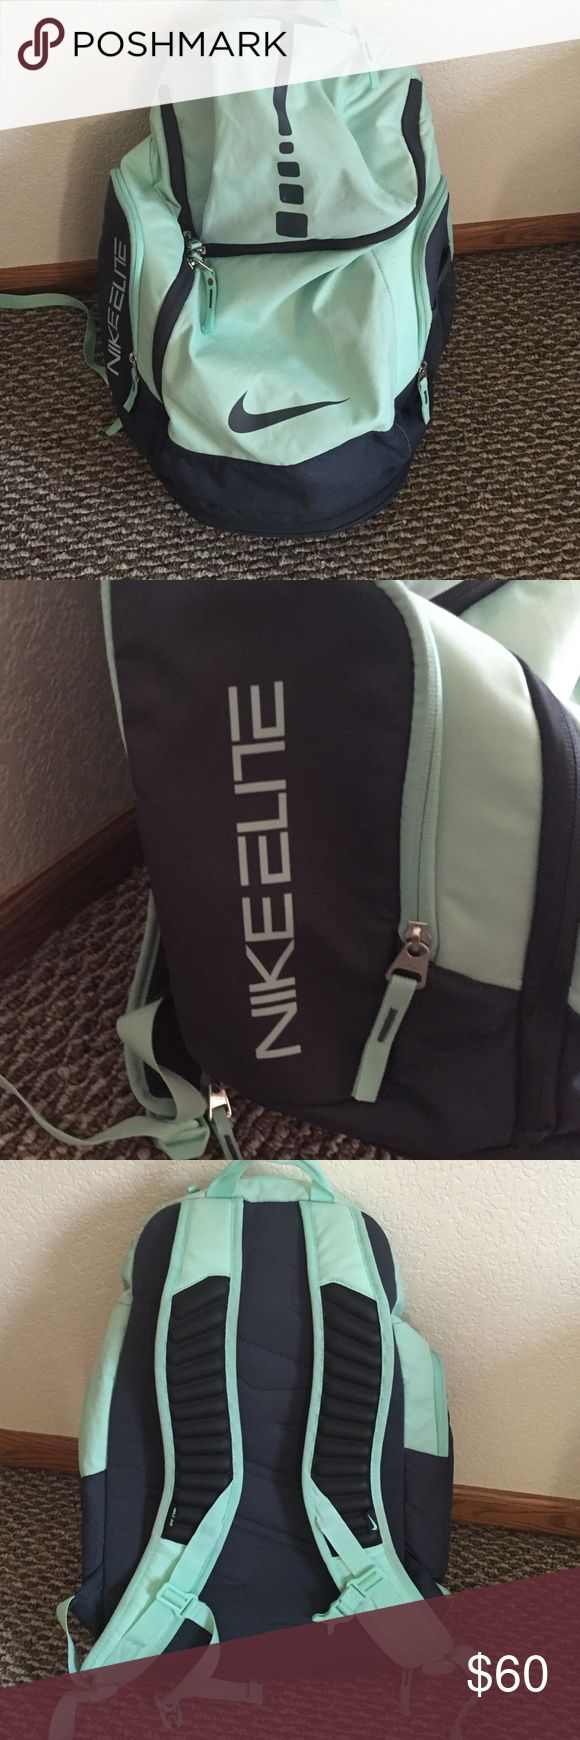 Nike Elite backpack Mint colored Nike Elite backpack. Used for college, just got a different one this year. Very big to hold a lot! Has air pads on straps for comfort. Side compartment is insulated. Nike Bags Backpacks